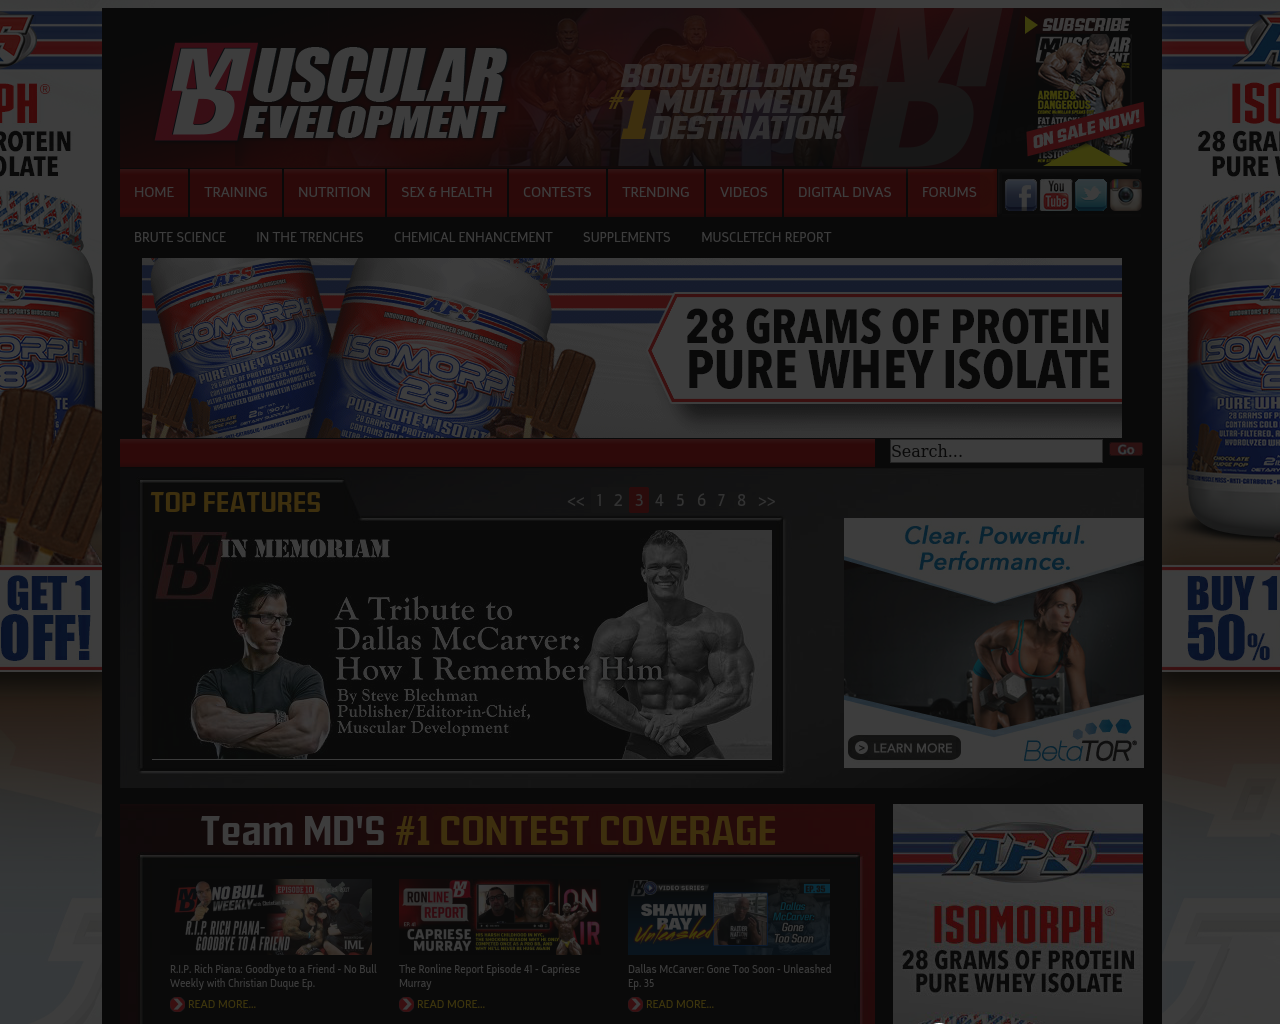 Muscular-Development-Advertising-Reviews-Pricing